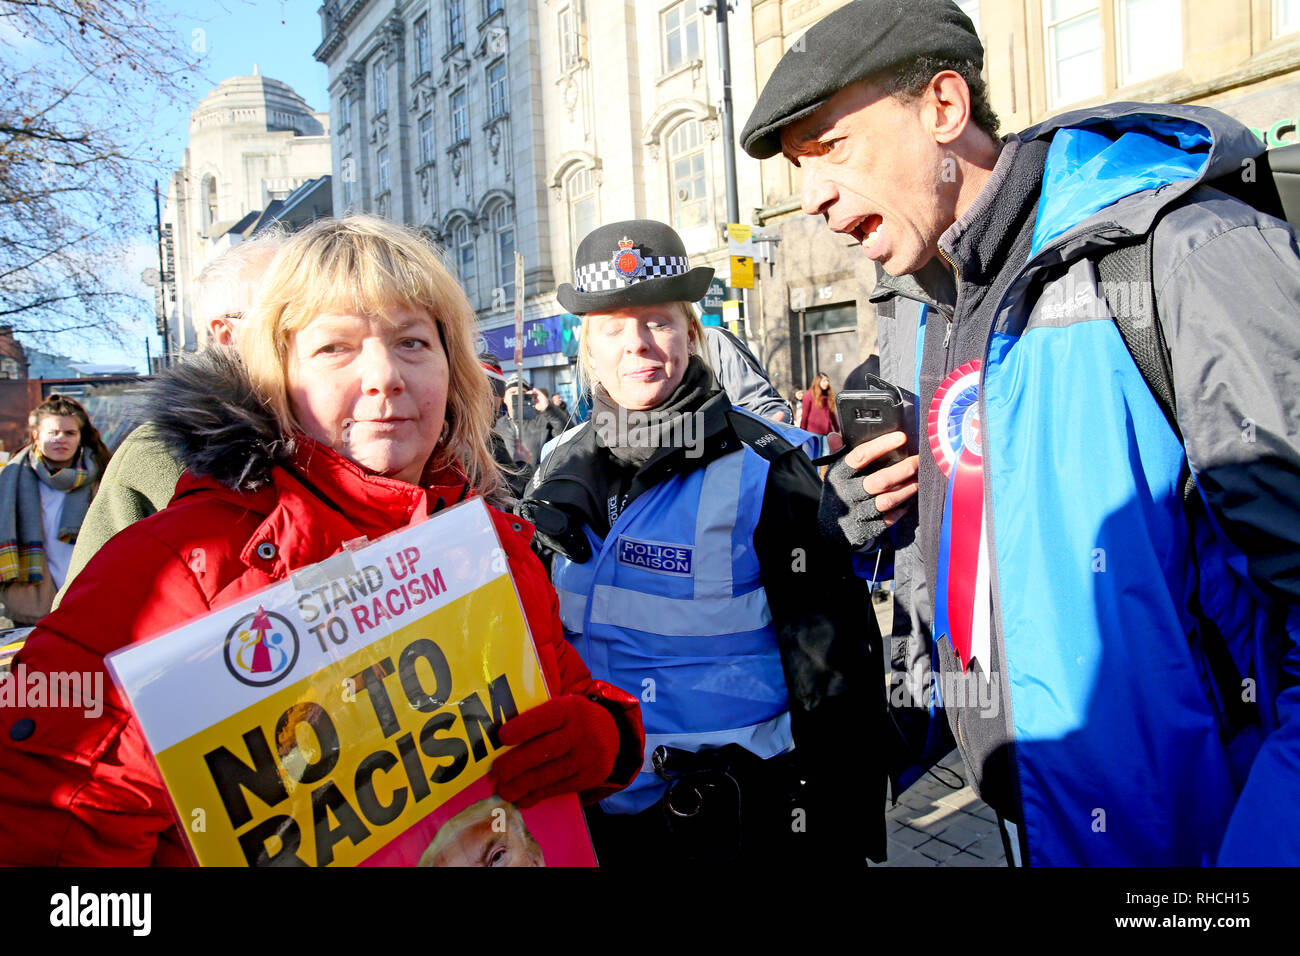 Manchester, UK. 2nd February 2019. A right wing protester shouting at an anti racist campaigner in Piccadilly Gardens,  Manchester, UK, 2nd February 2019 (C)Barbara Cook/Alamy Live News Credit: Barbara Cook/Alamy Live News - Stock Image